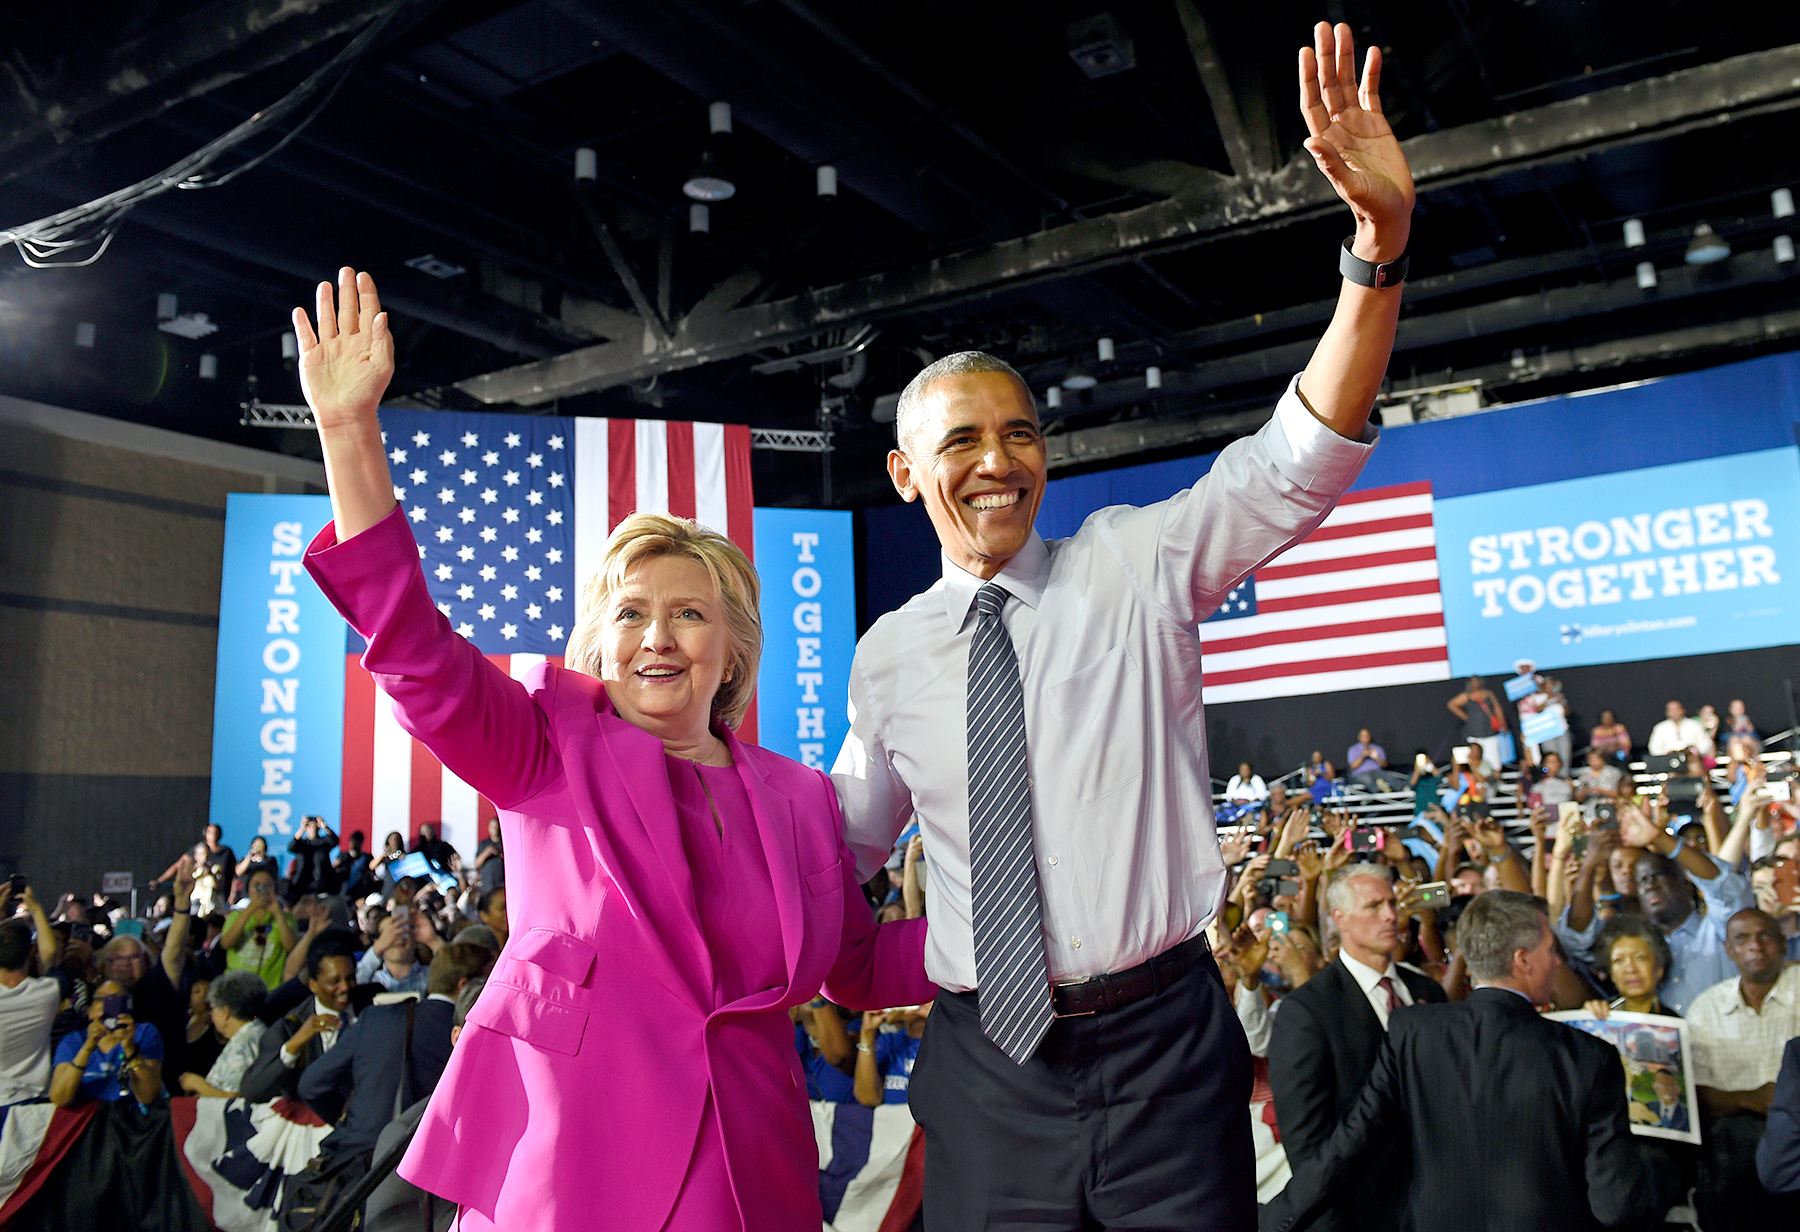 President Barack Obama and Democratic presidential candidate Hillary Clinton wave following a campaign event at the Charlotte Convention Center in Charlotte, N.C., Tuesday, July 5, 2016.